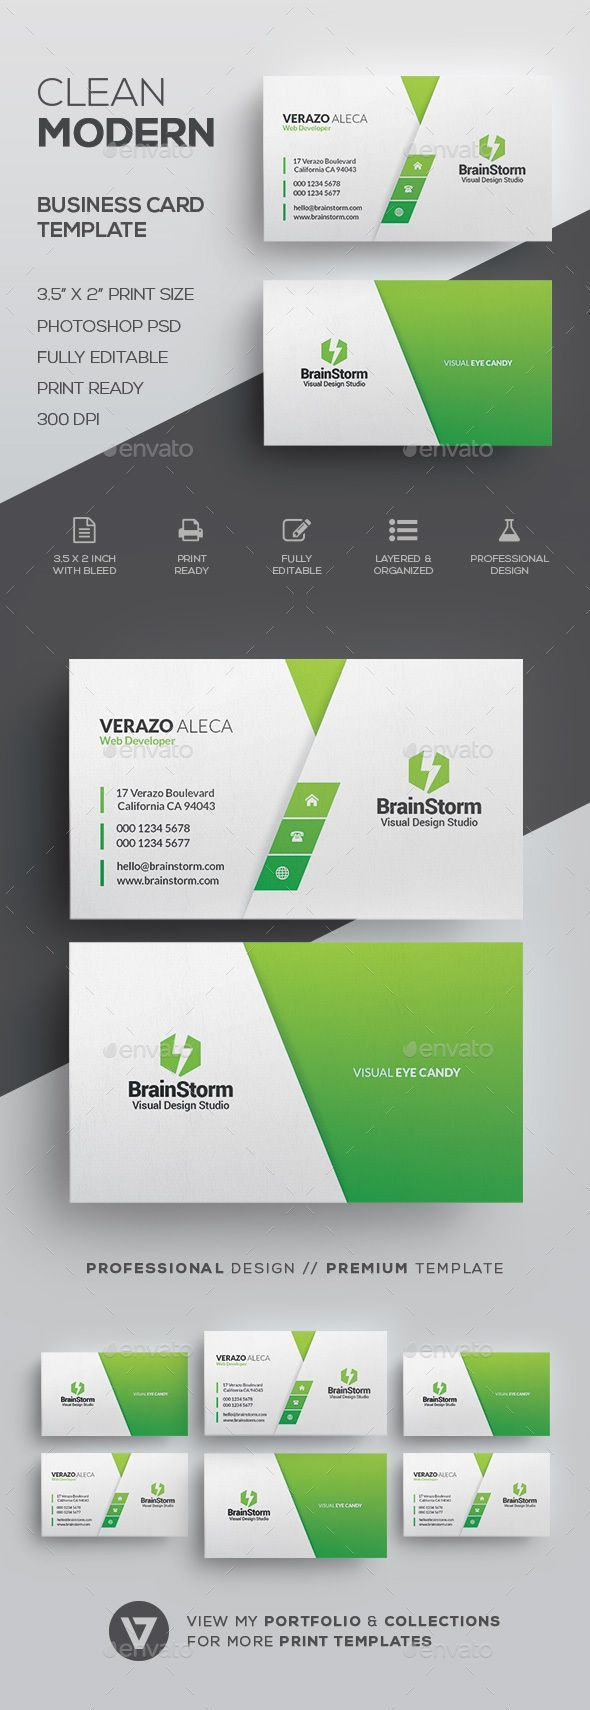 Best 25 buy business ideas on pinterest start a business from clean modern business card template magicingreecefo Image collections